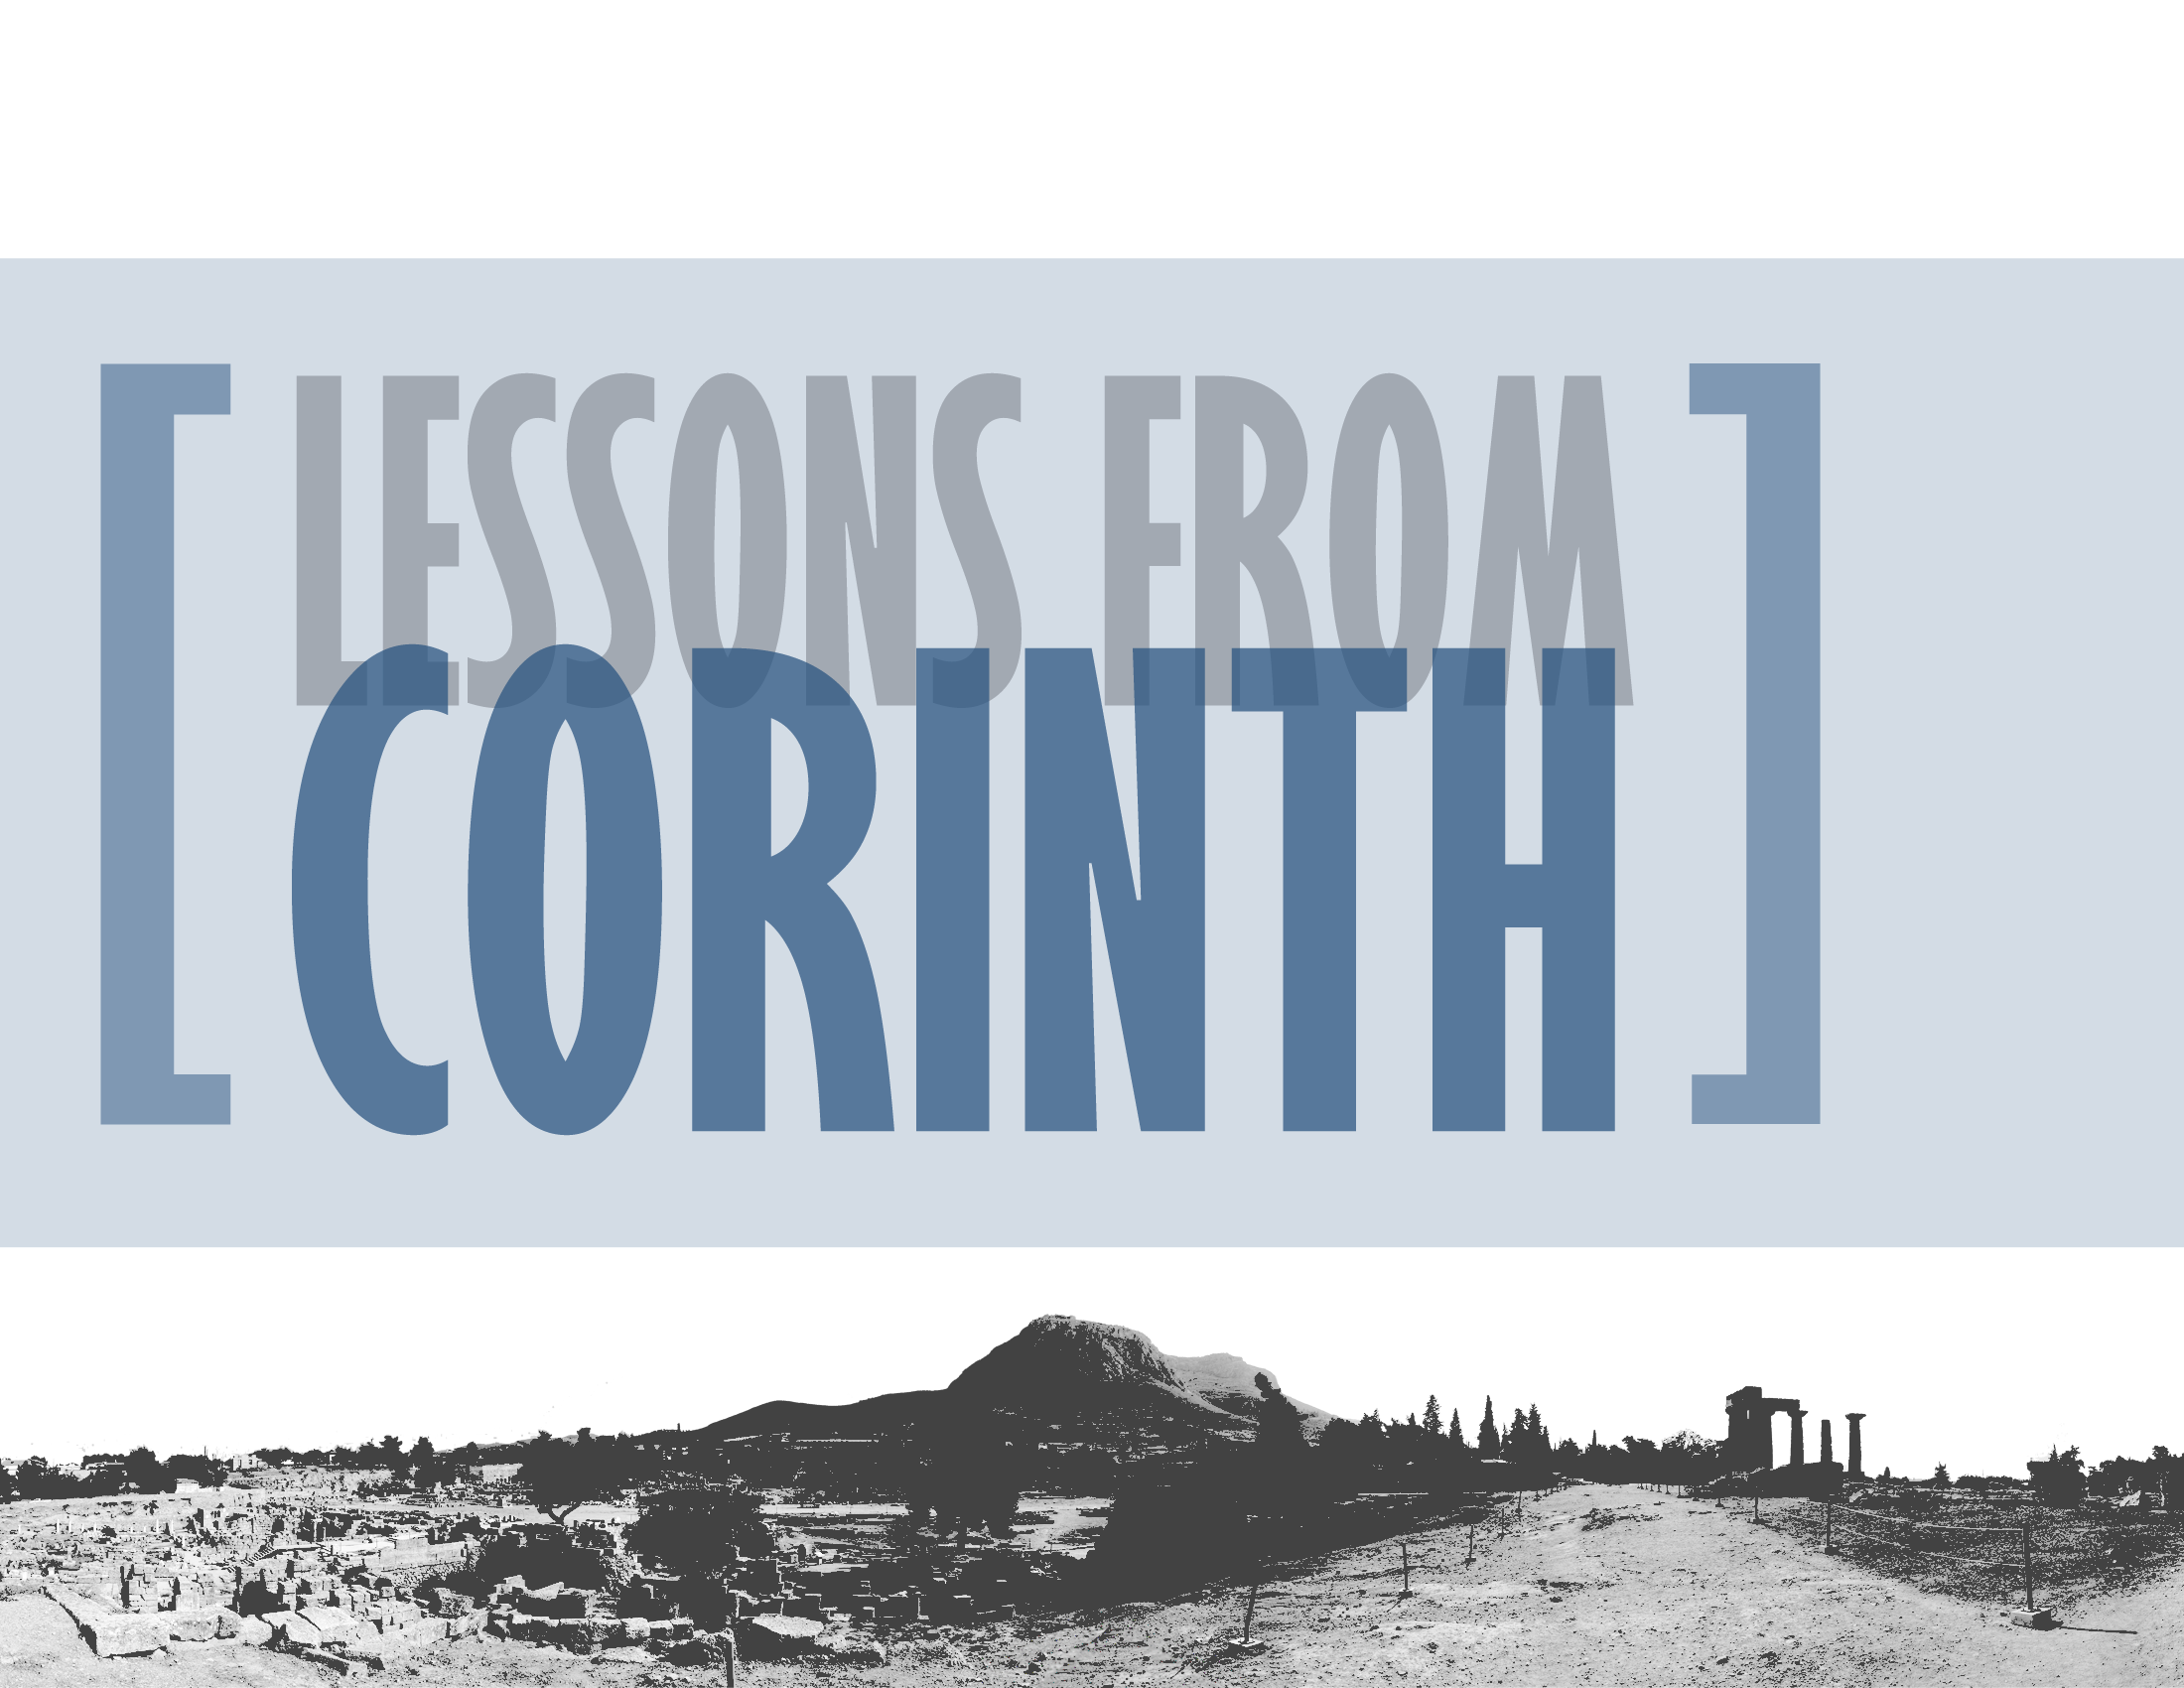 lessons_from_corinth